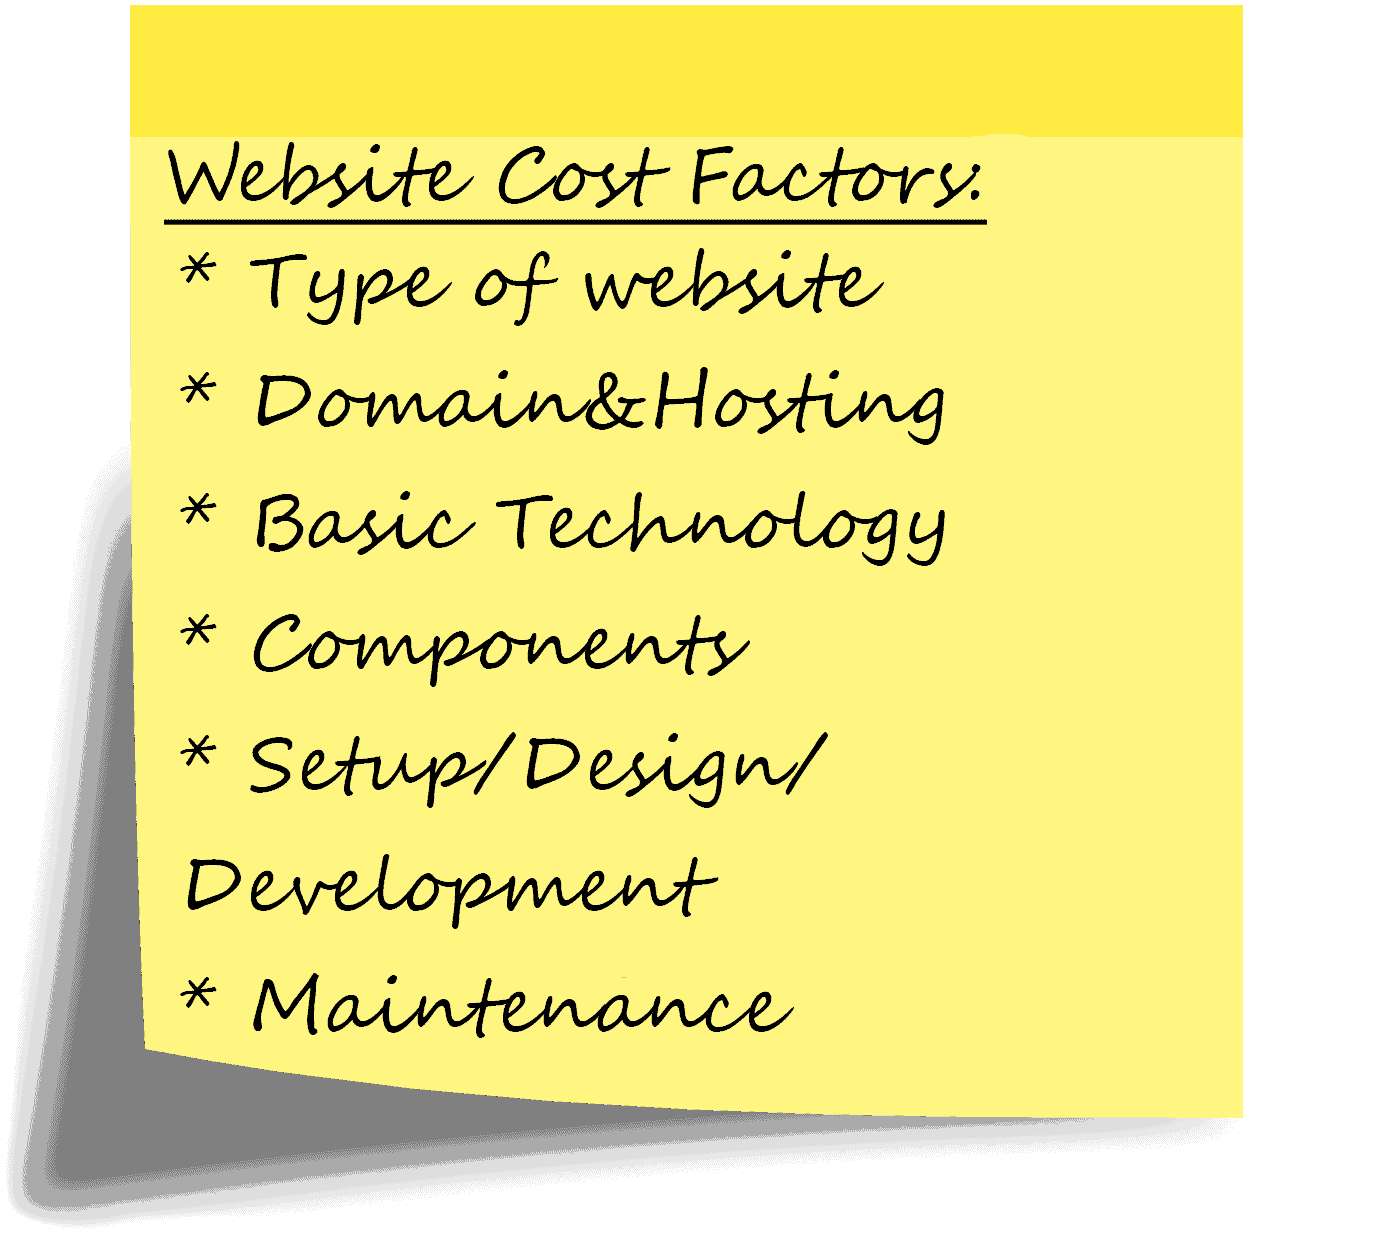 How Much Does a Website Cost? (A Detailed Website Cost Blueprint)